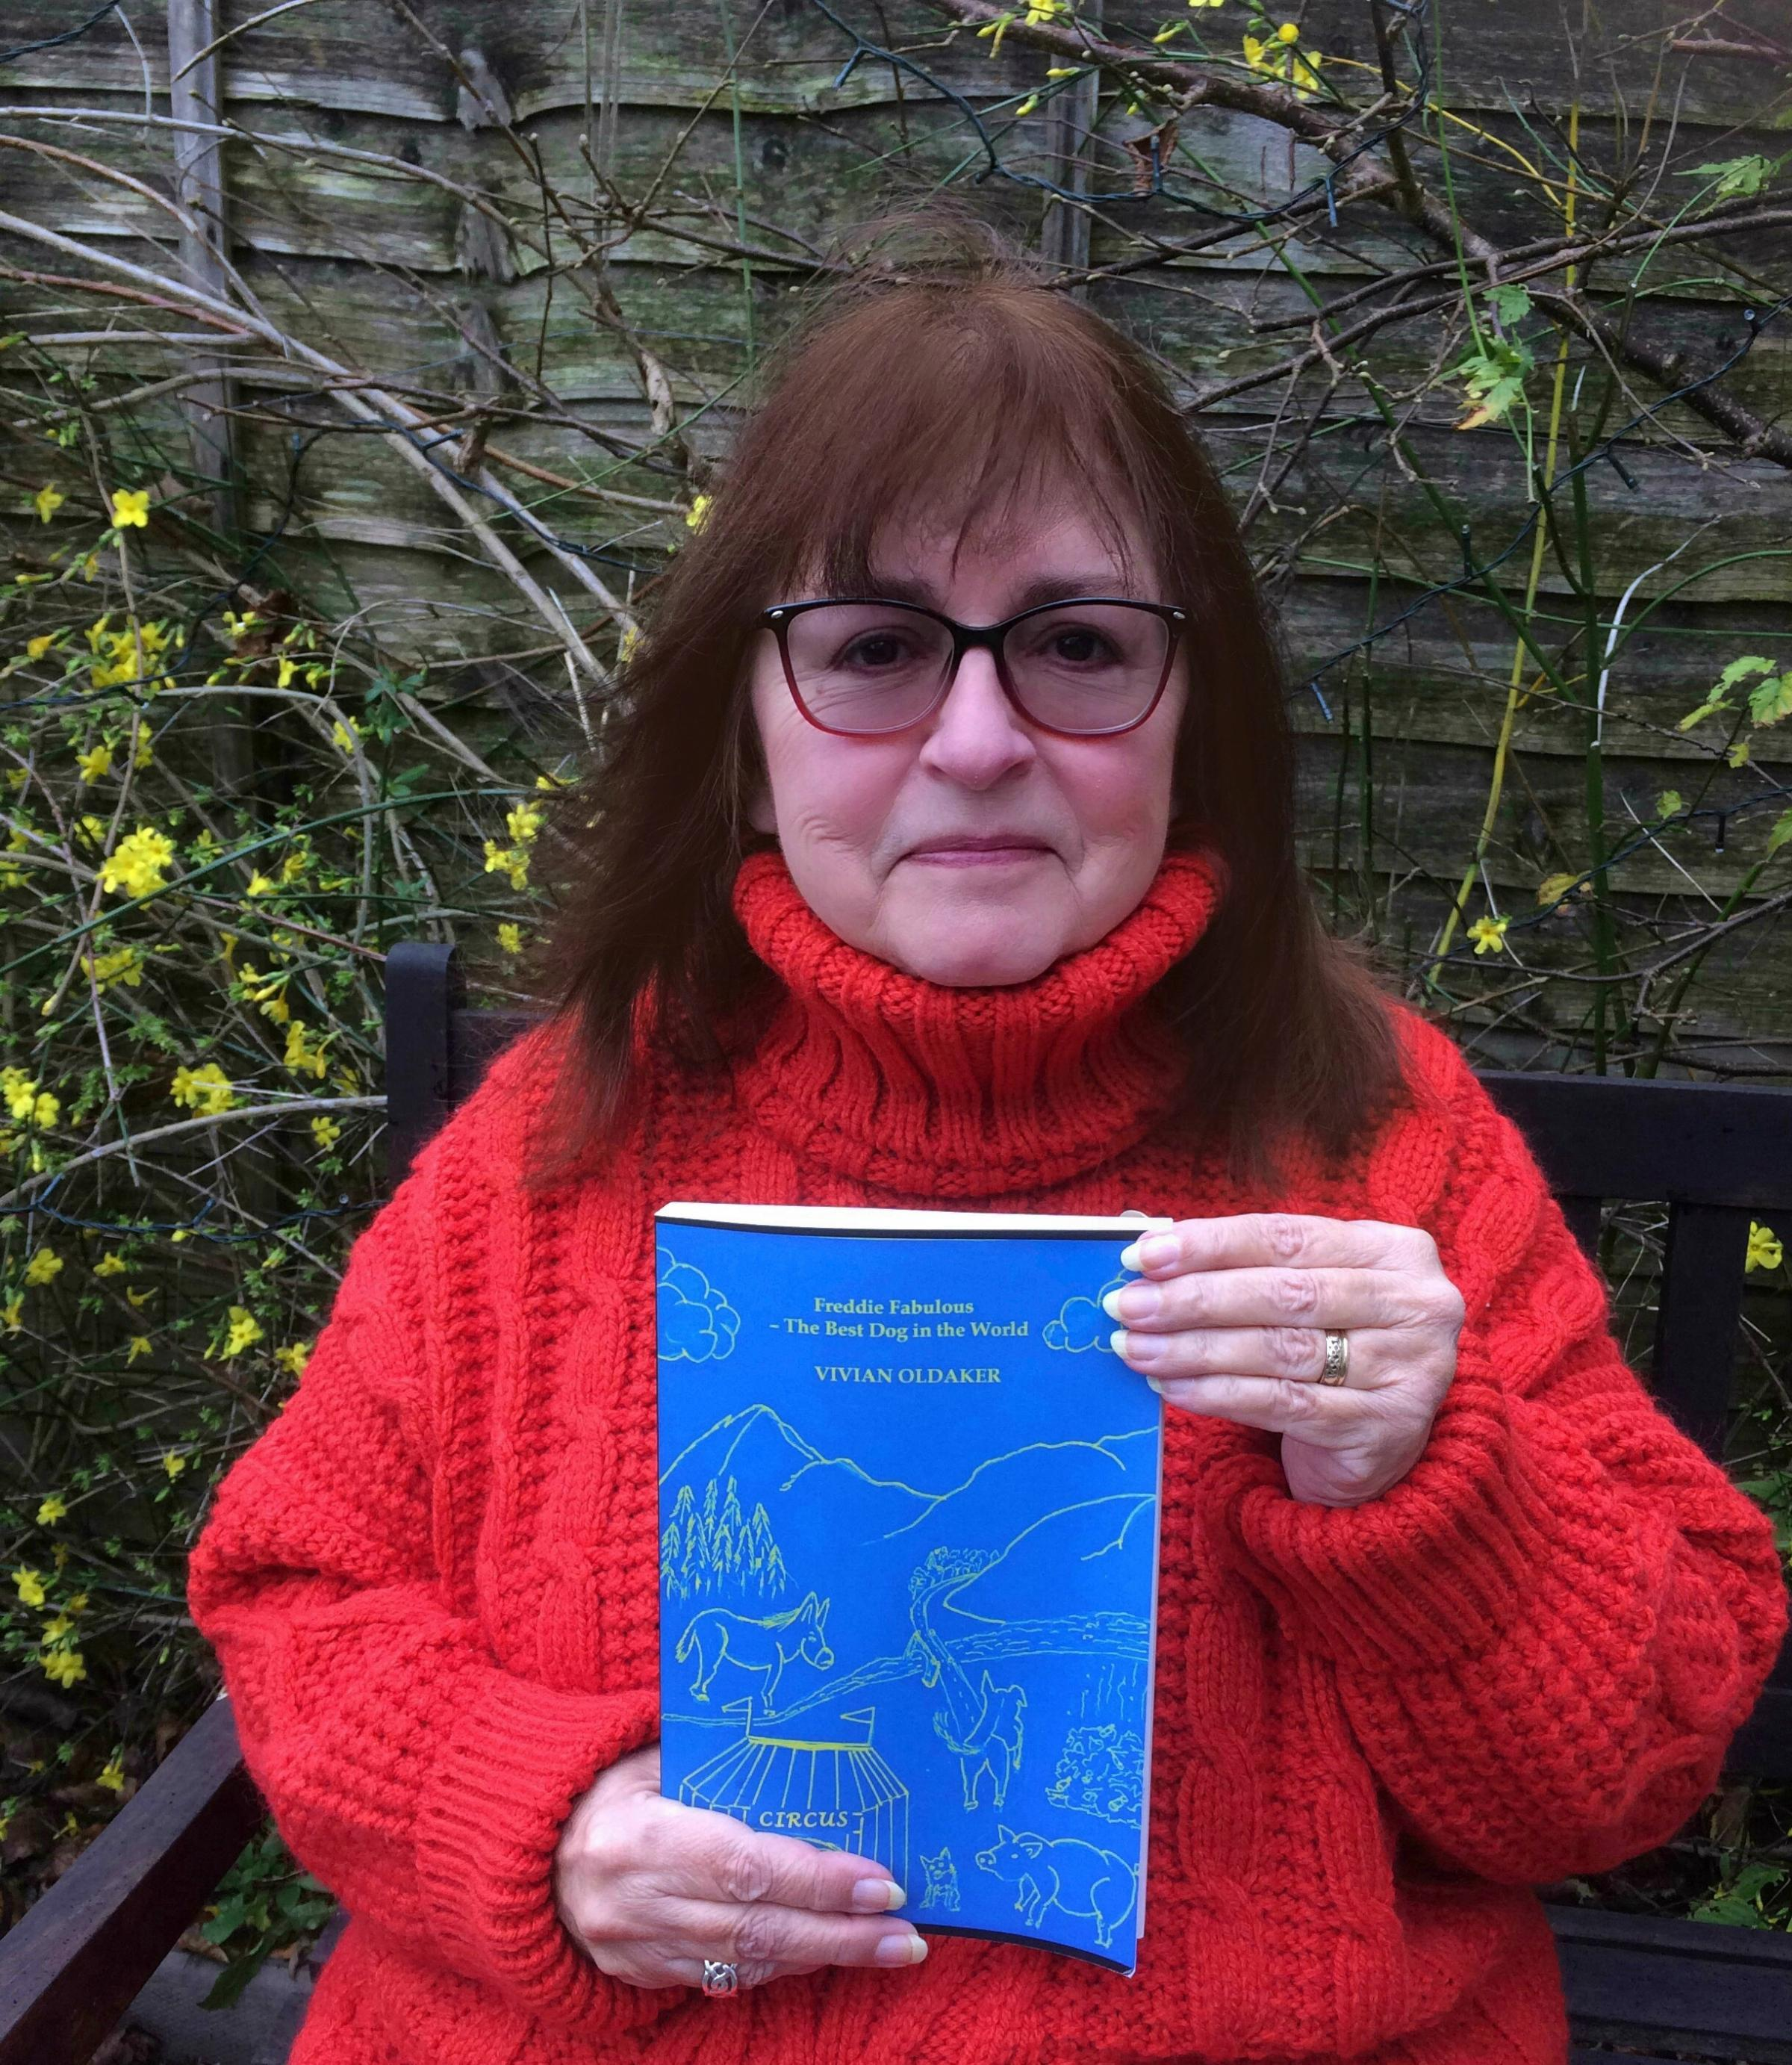 Tisbury writer Vivian Oldaker with her new book Freddie Fabulous – The Best Dog in the World